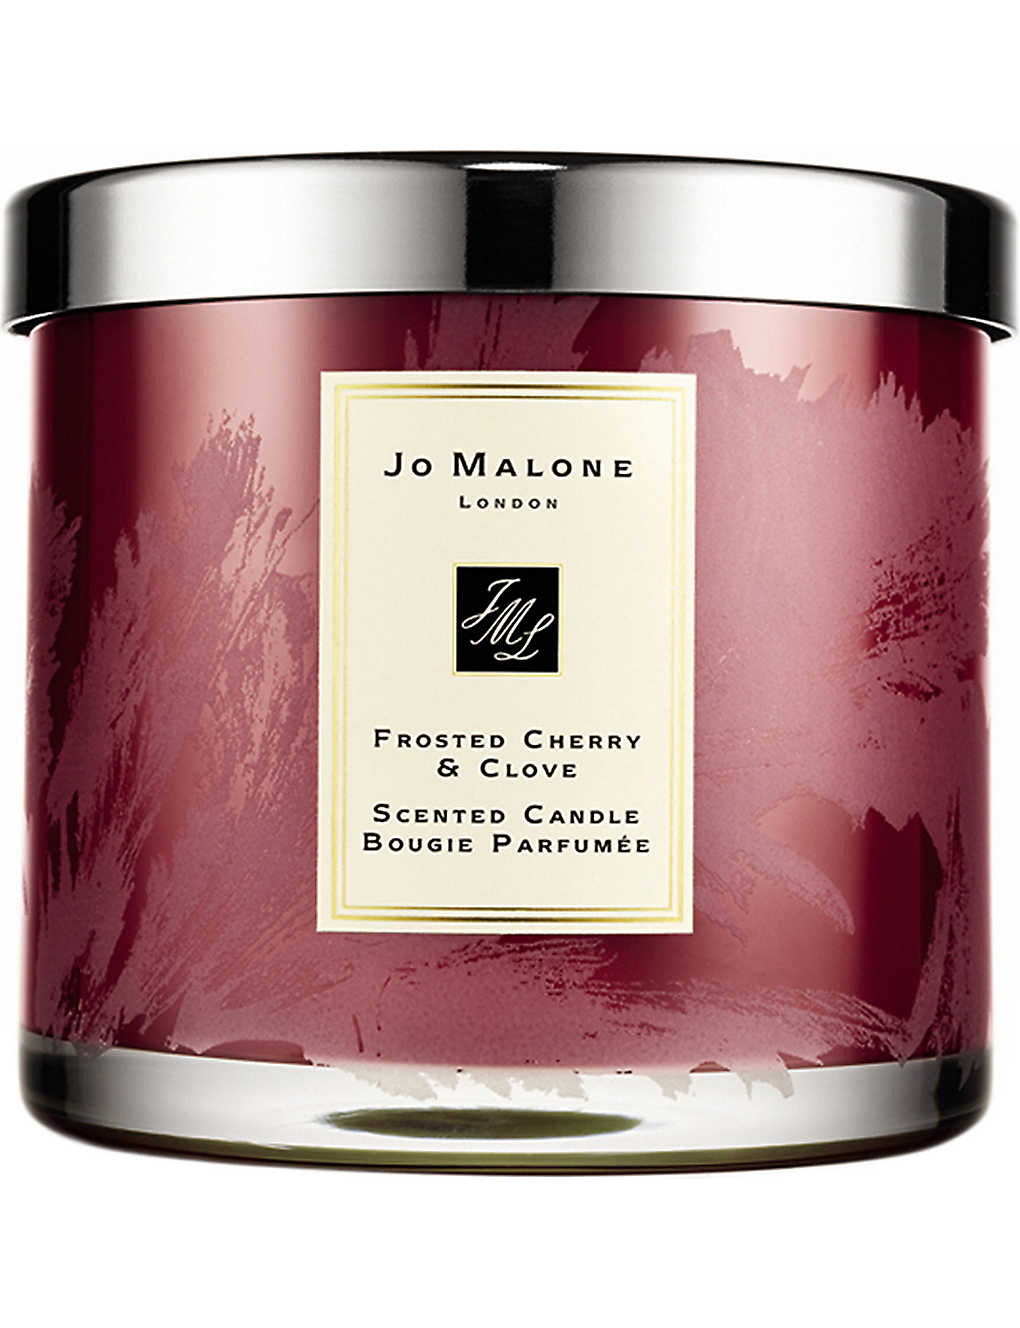 JO MALONE LONDON: Frosted Cherry & Clove deluxe candle